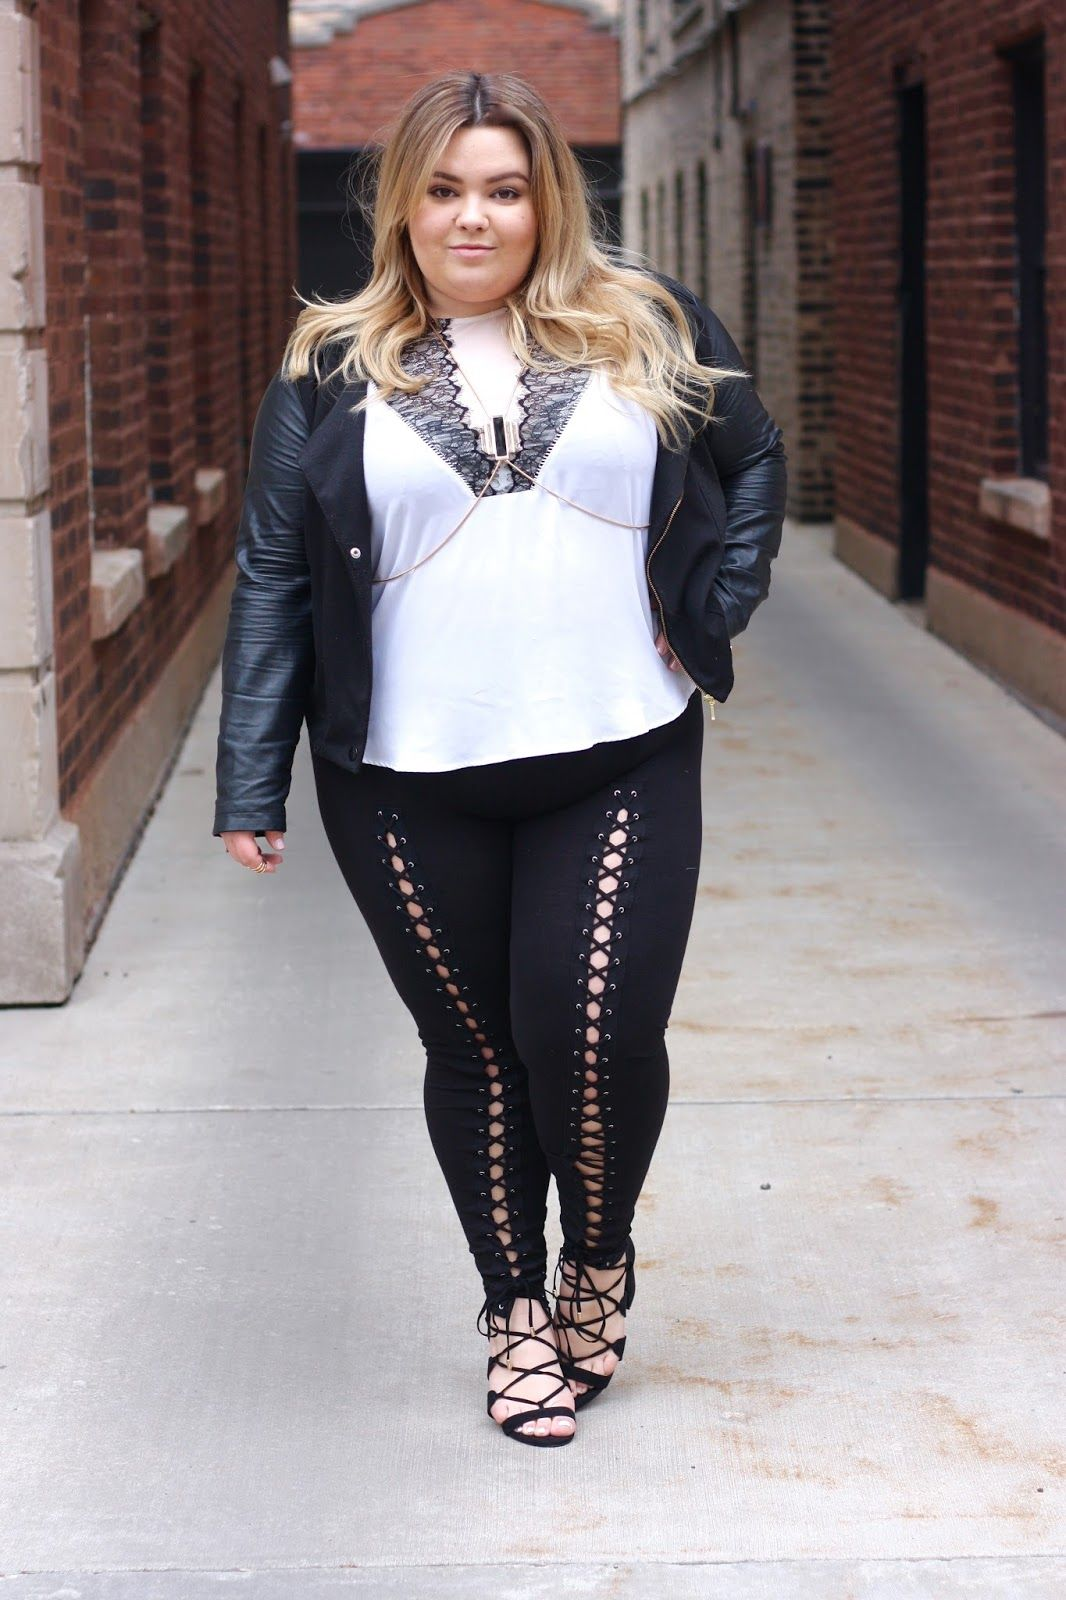 plus size lace up leggings, khloe kardashian lace up leggings ...